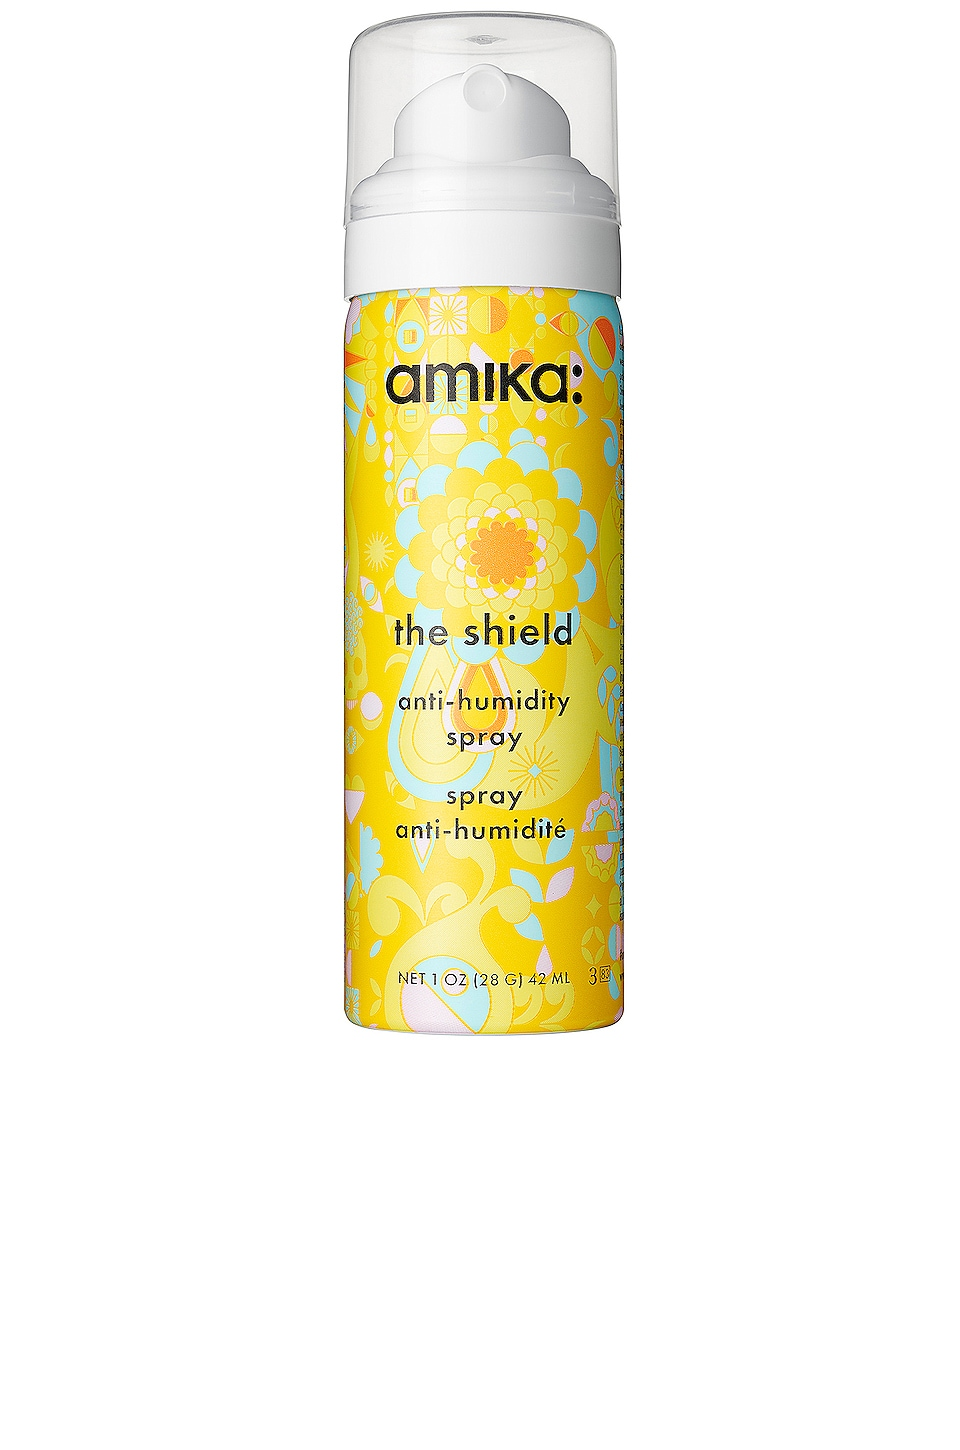 Amika Travel The Shield Anti-Humidity Spray